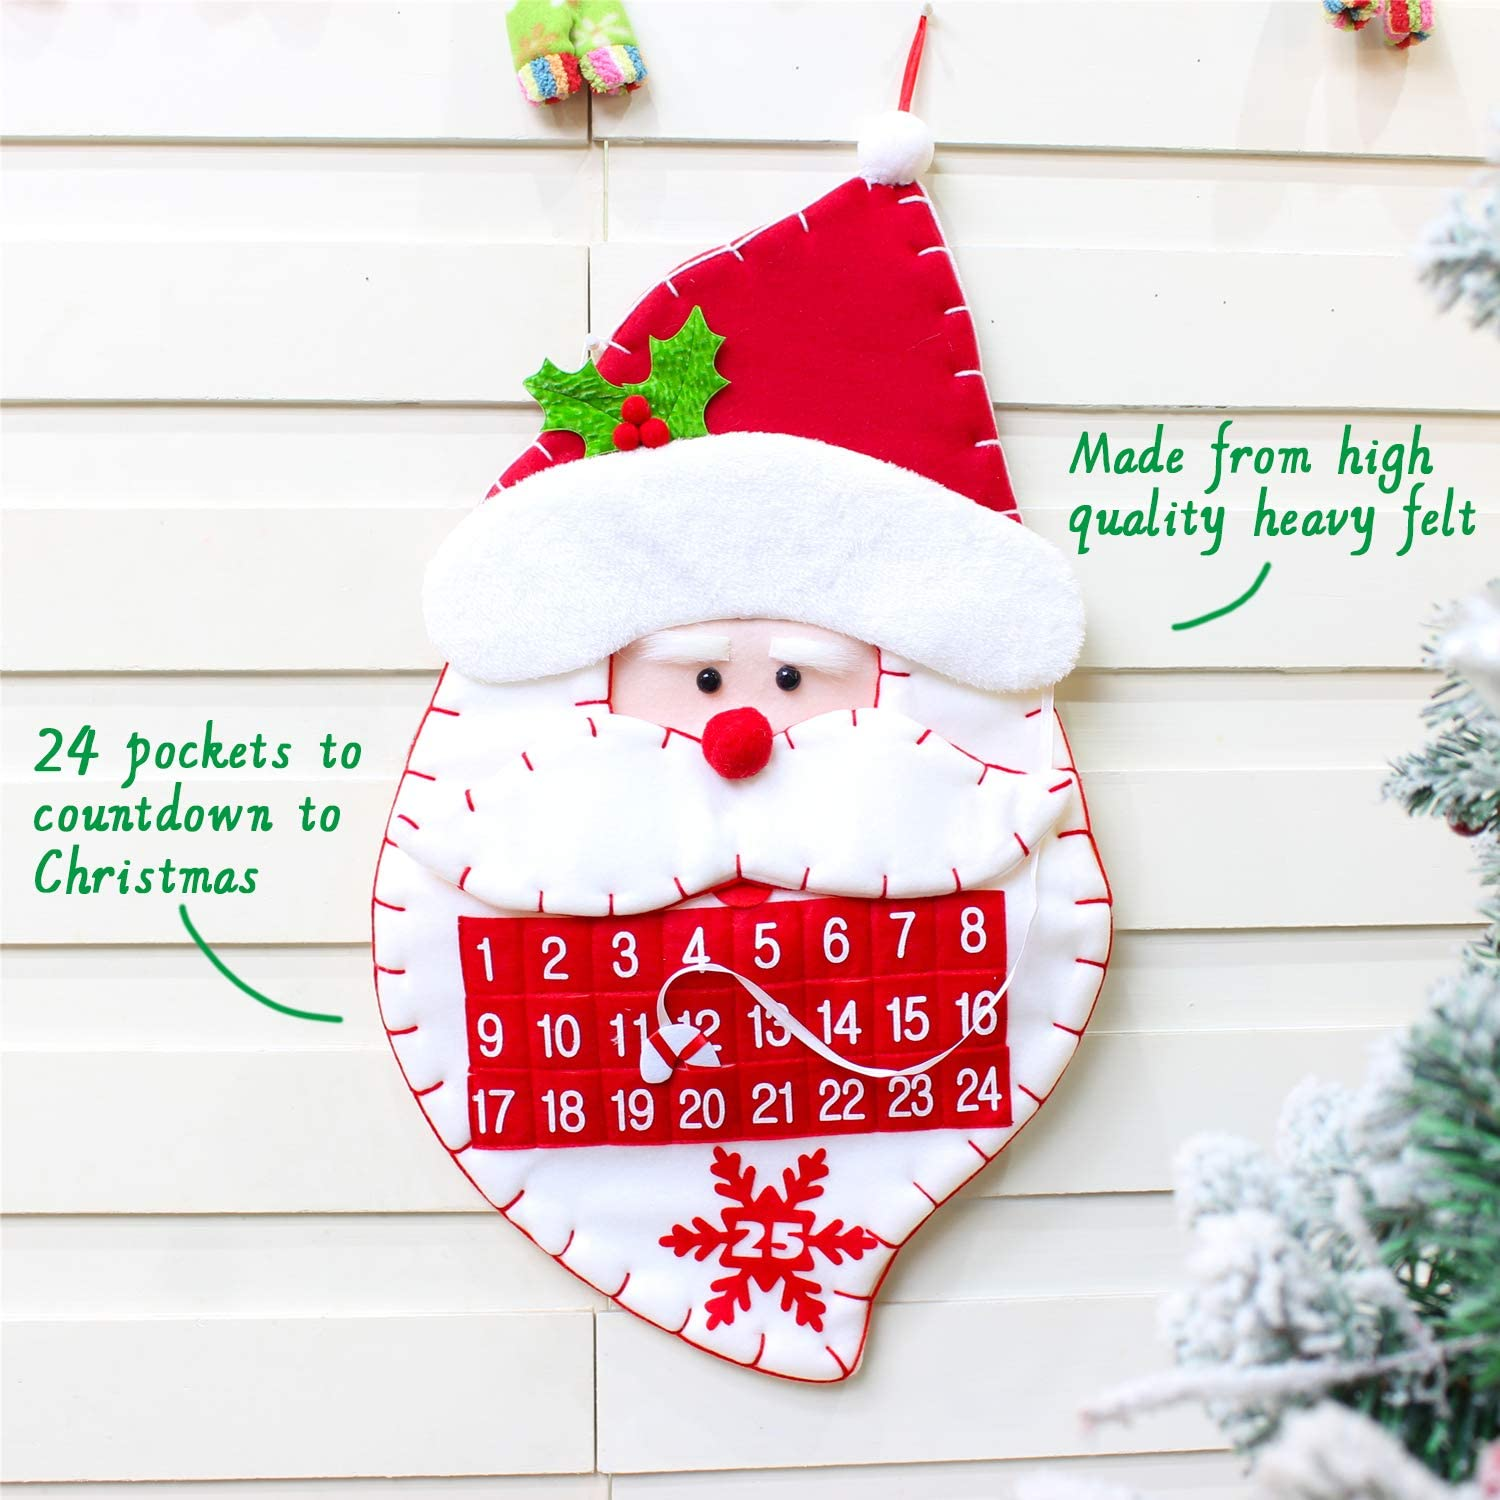 Decoration Family Friendly for All Ages Christmas Xmas Noel Felt Christmas Advent Calendar with 24 Numbered Pockets Hanging Santa Claus Countdown to Christmas Calendar Activity Advent